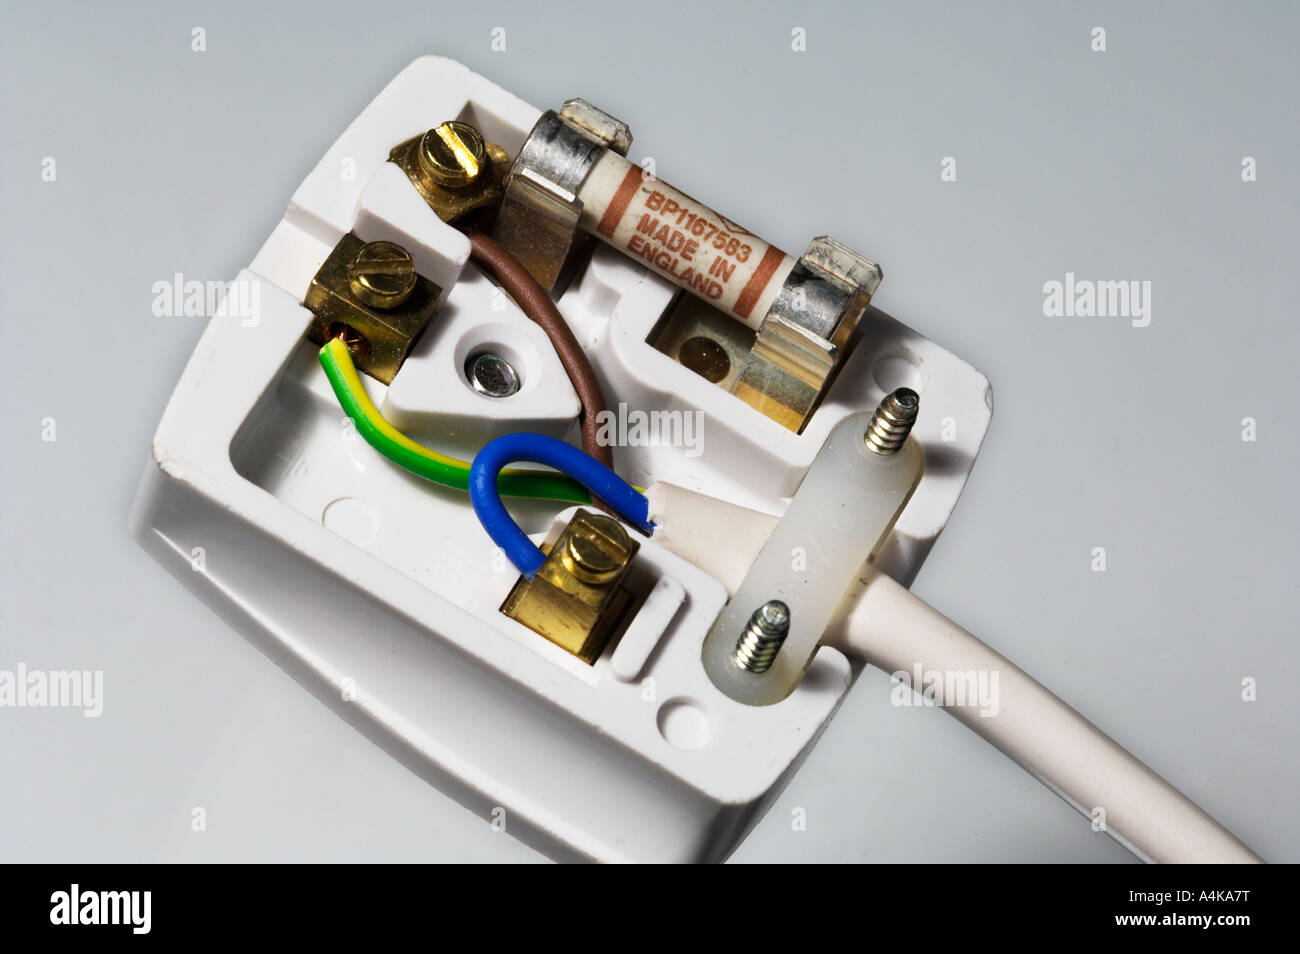 three pin plug diagram three image wiring diagram wiring diagram 3 pin plug wiring image wiring diagram on three pin plug diagram